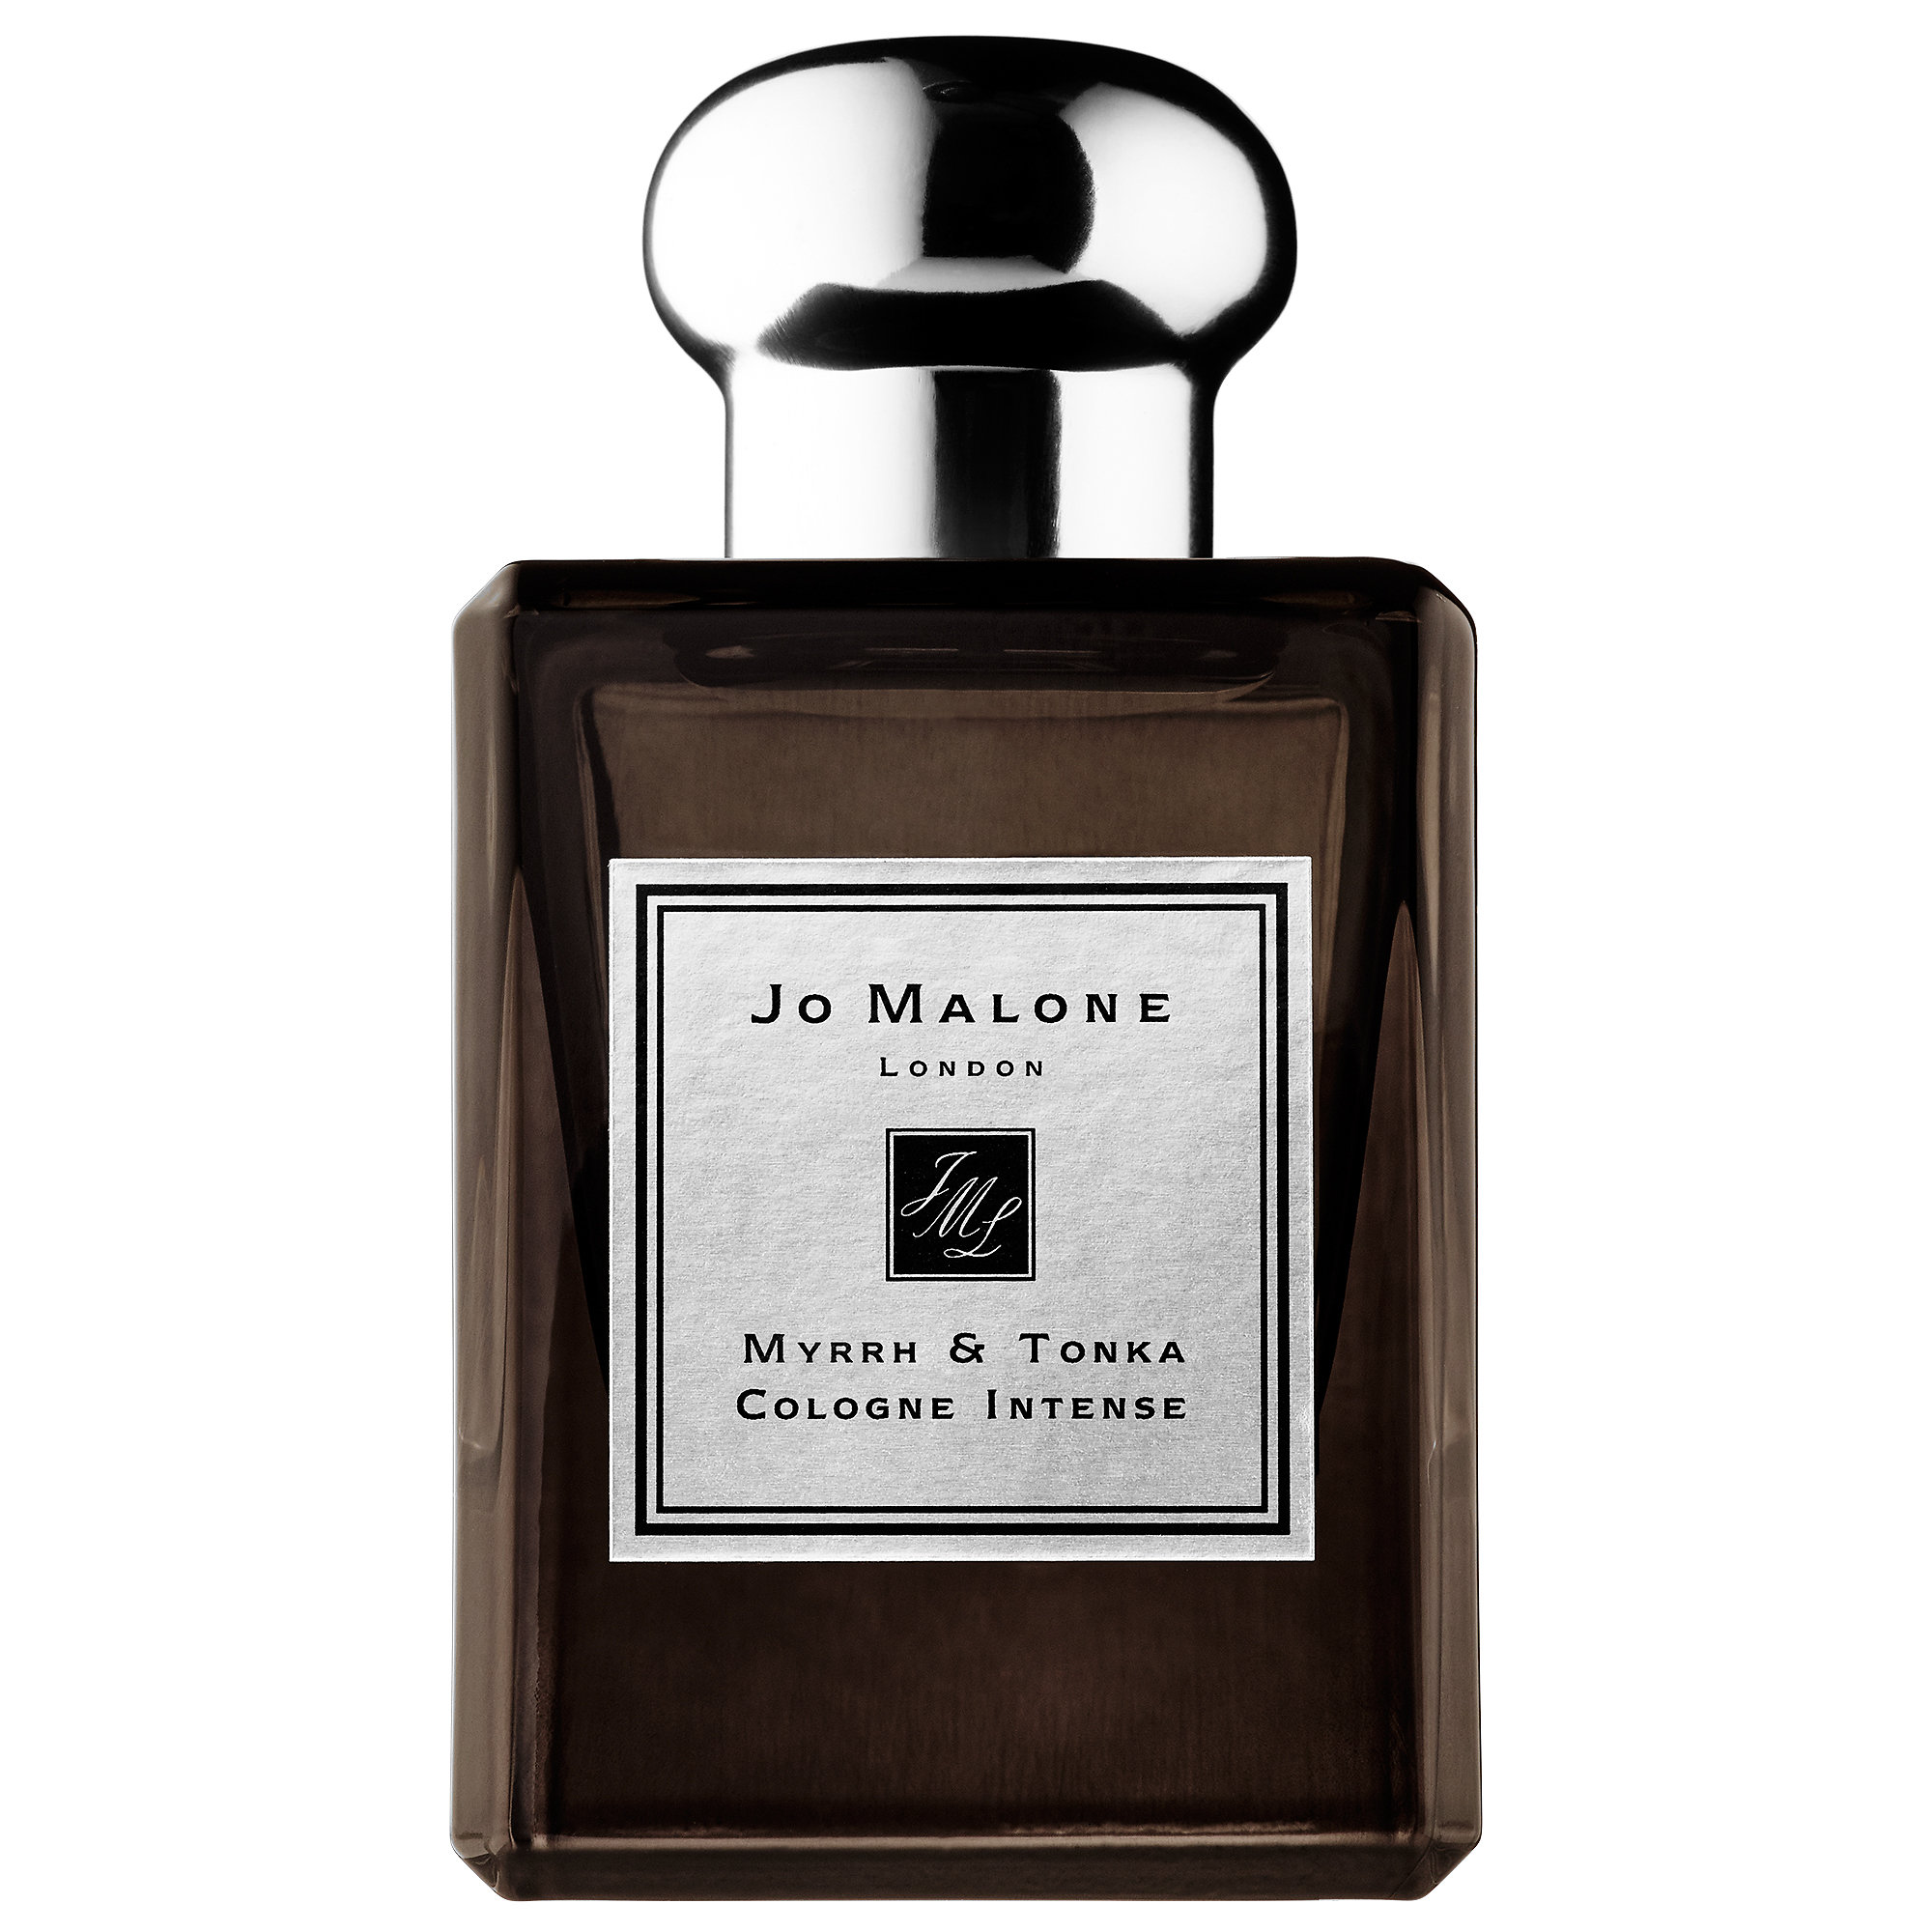 Jo Malone London - Myrrh & Tonka Cologne Intense